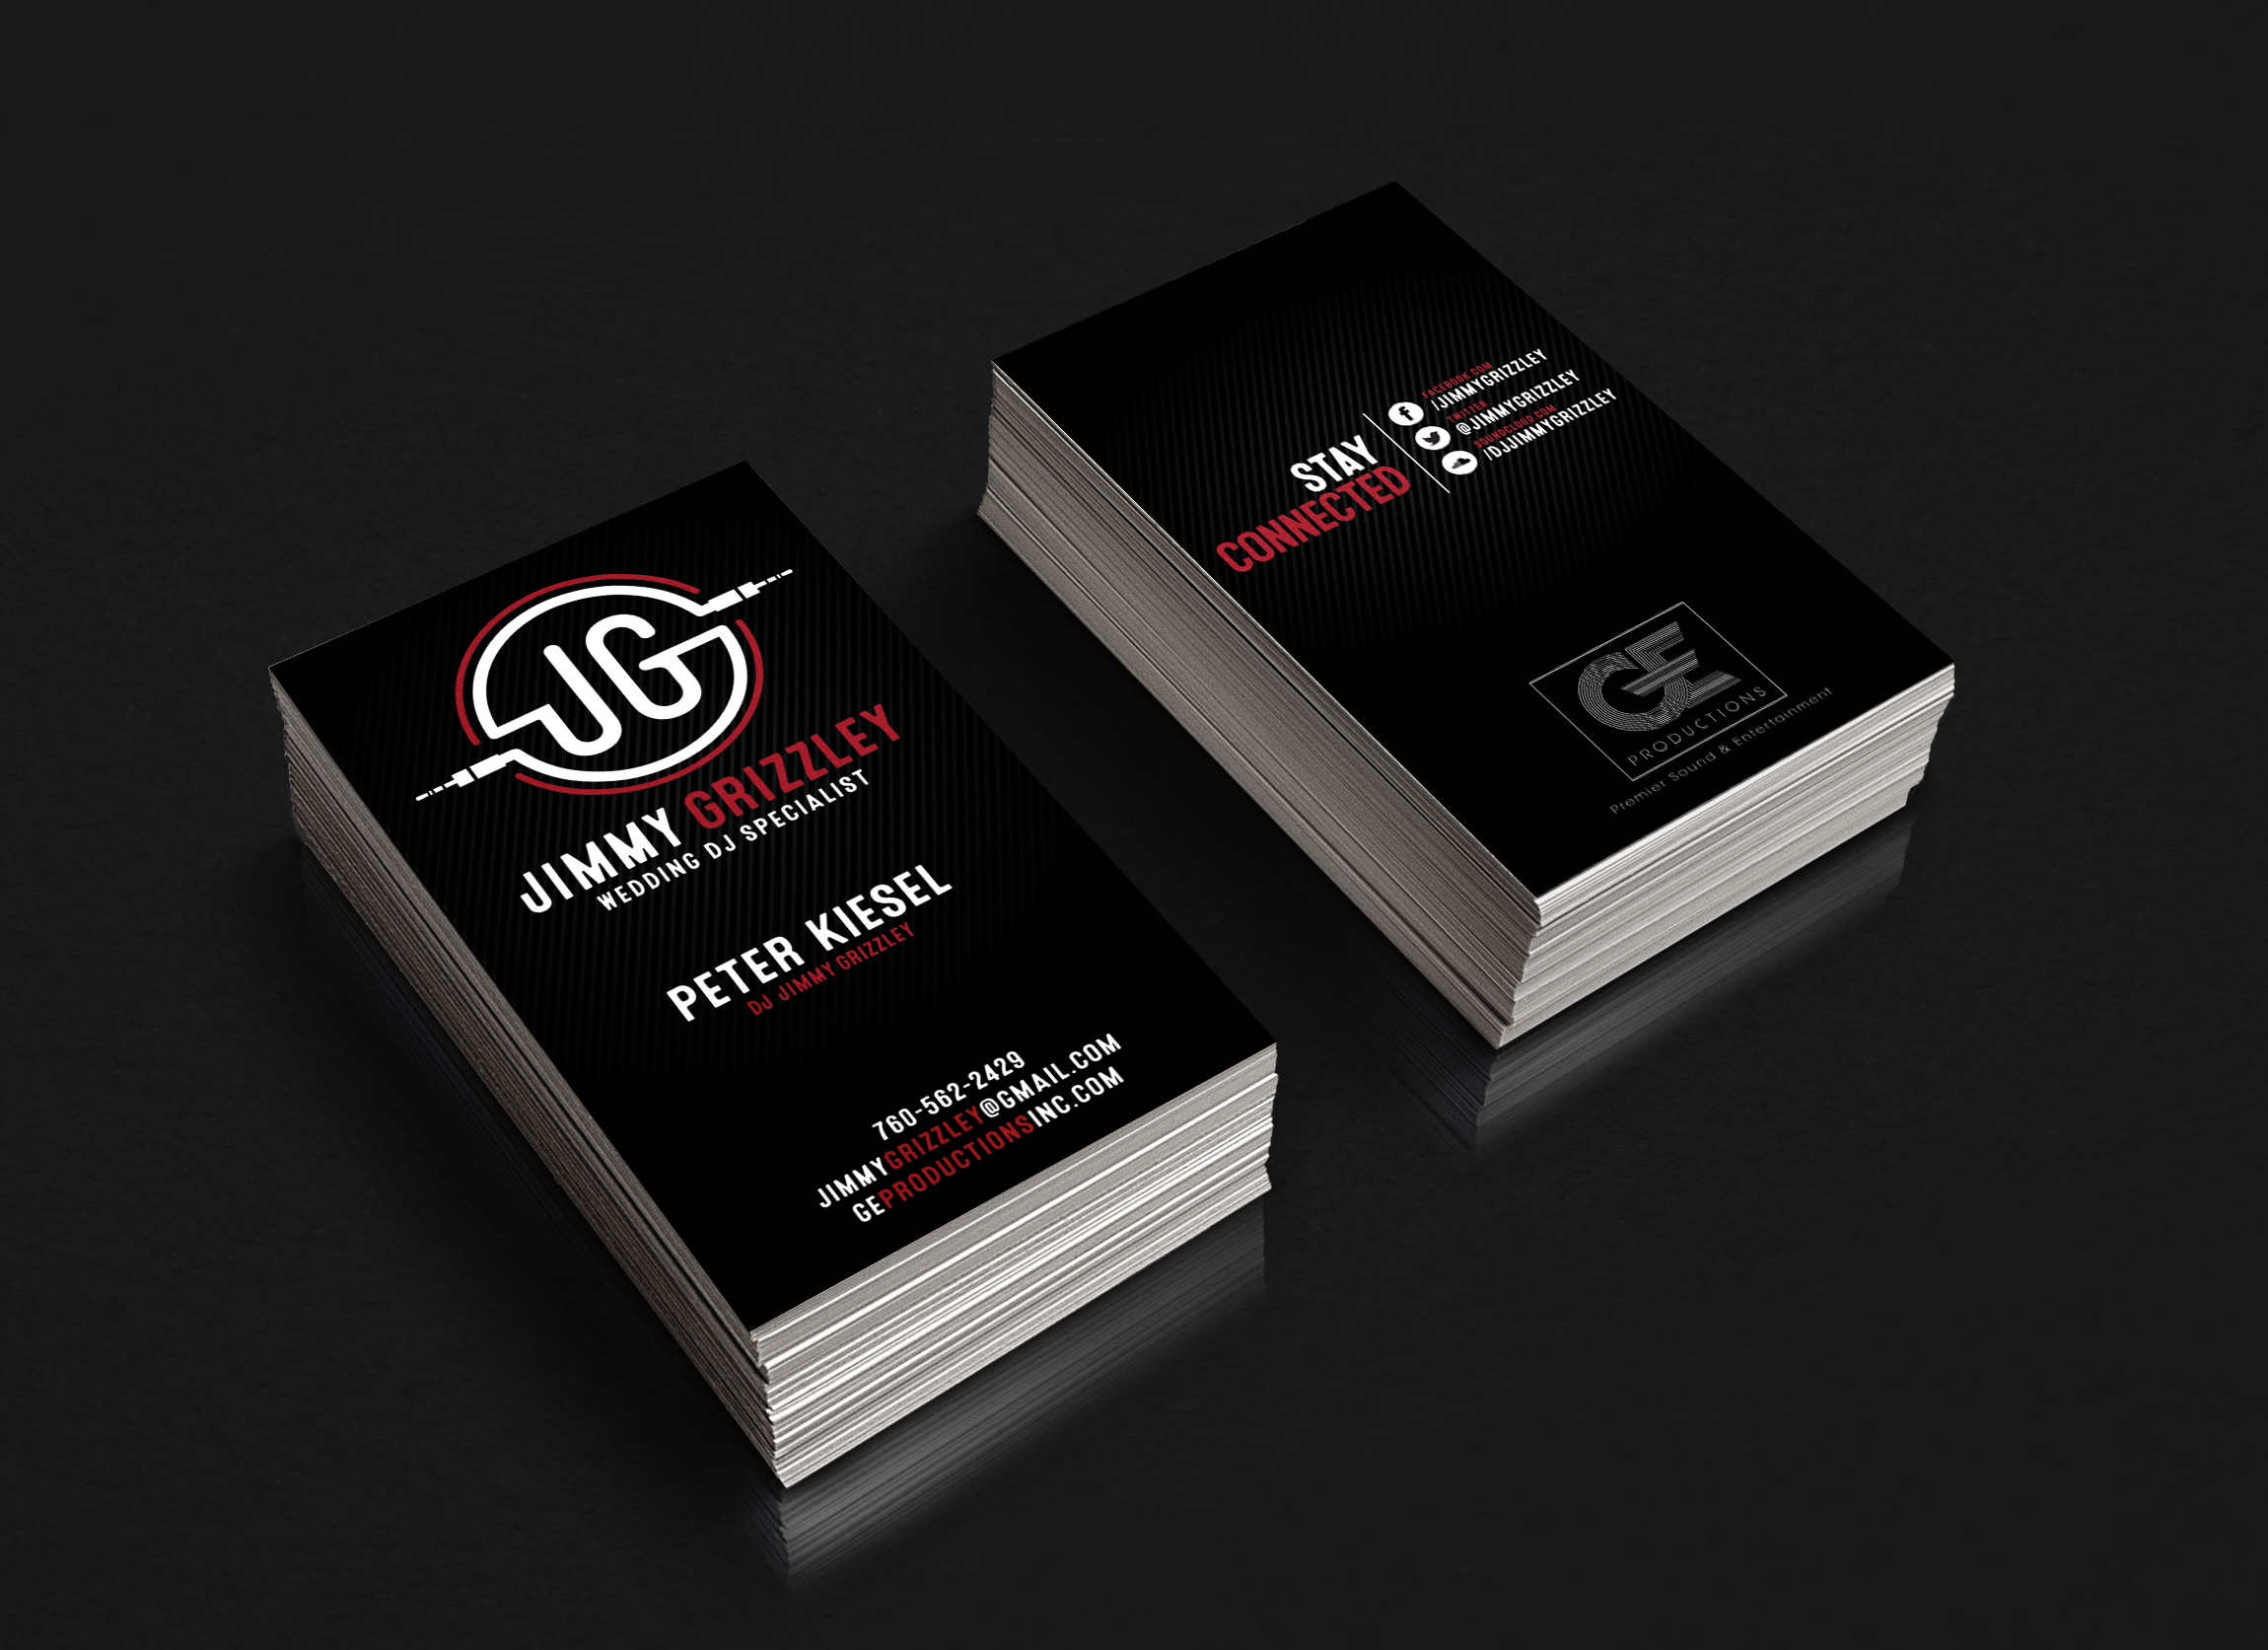 Dj Logo Business Cards Images - Card Design And Card Template